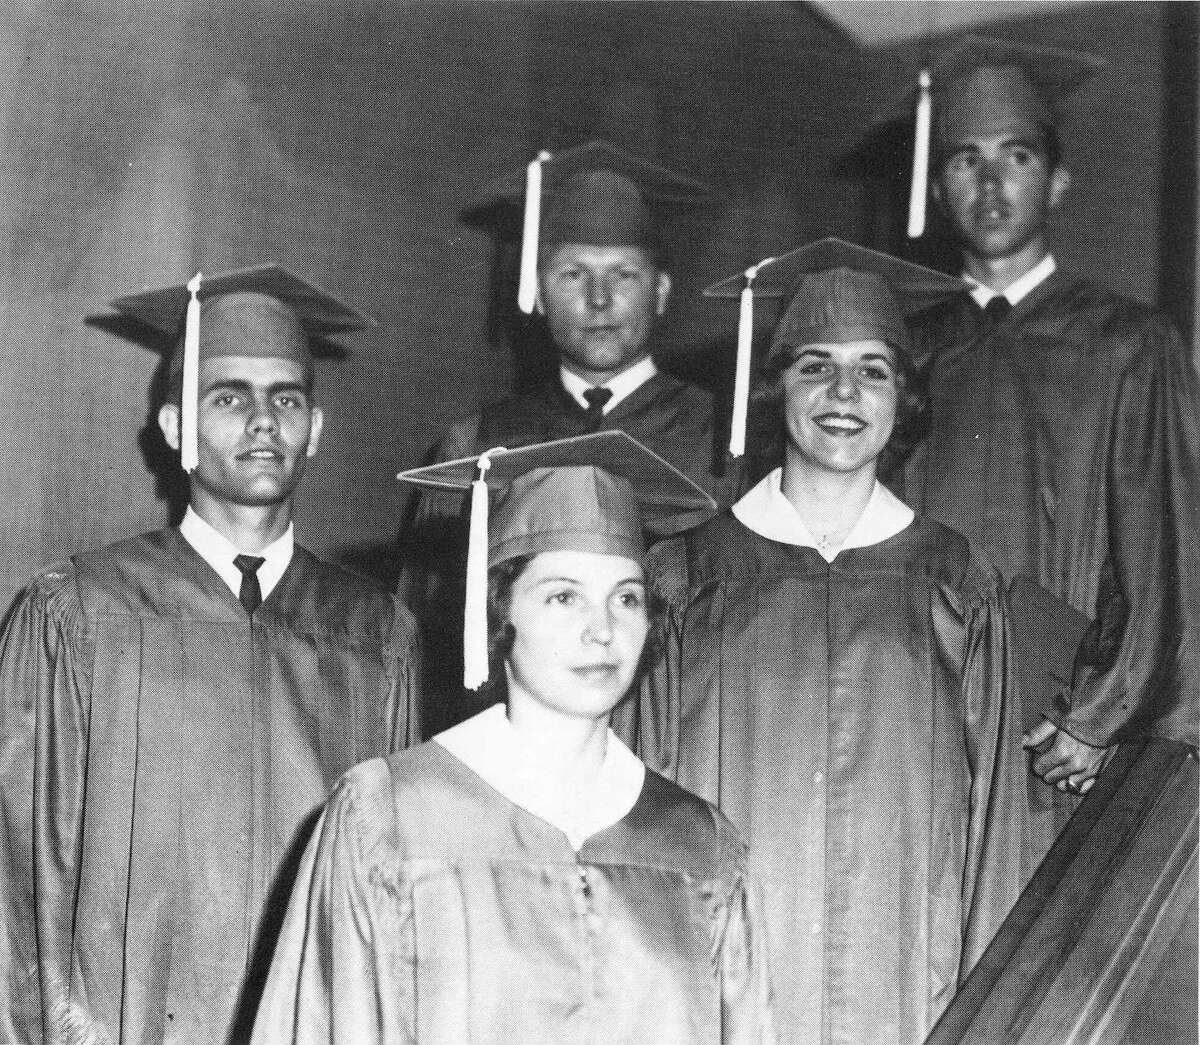 San Jacinto College is marking its 60th anniversary. The first graduating class for the college occurred in May 1962 and featured five students - Allen Lee Gordon, Betty Darby, Perry Orand, Ann Spencer and Garrett Van Trease. All five attended other colleges as freshmen and transferred to San Jacinto College.